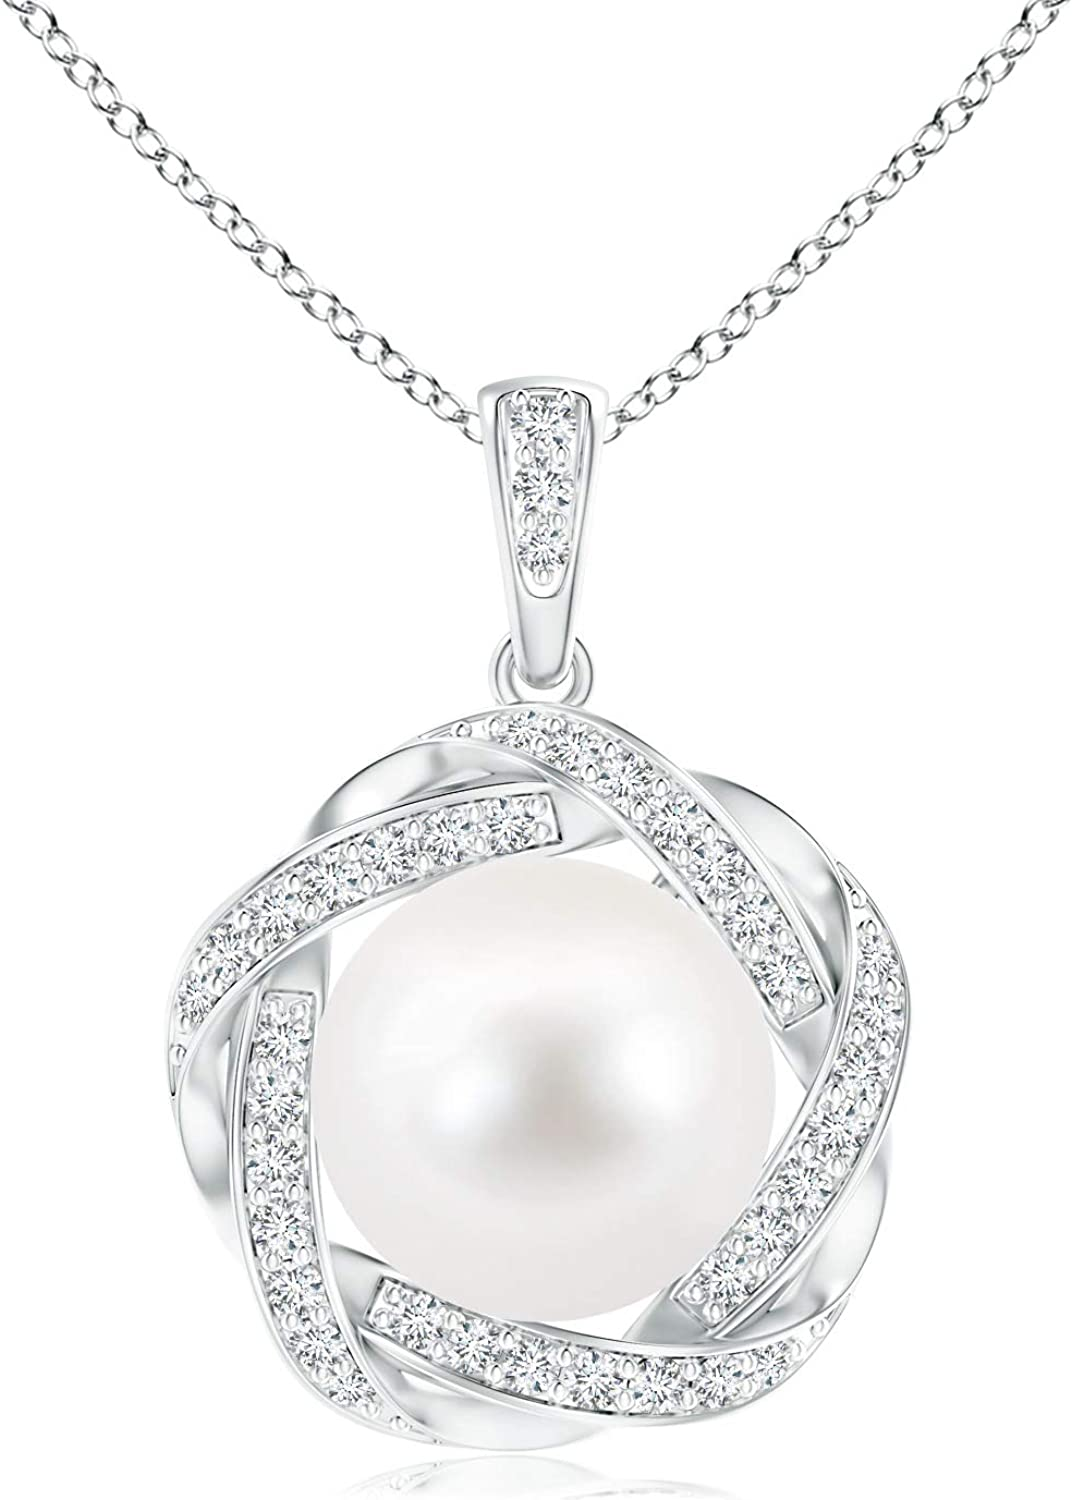 Freshwater Cultured Pearl Max 86% OFF Pendant with Braided Halo Diamond favorite 10m